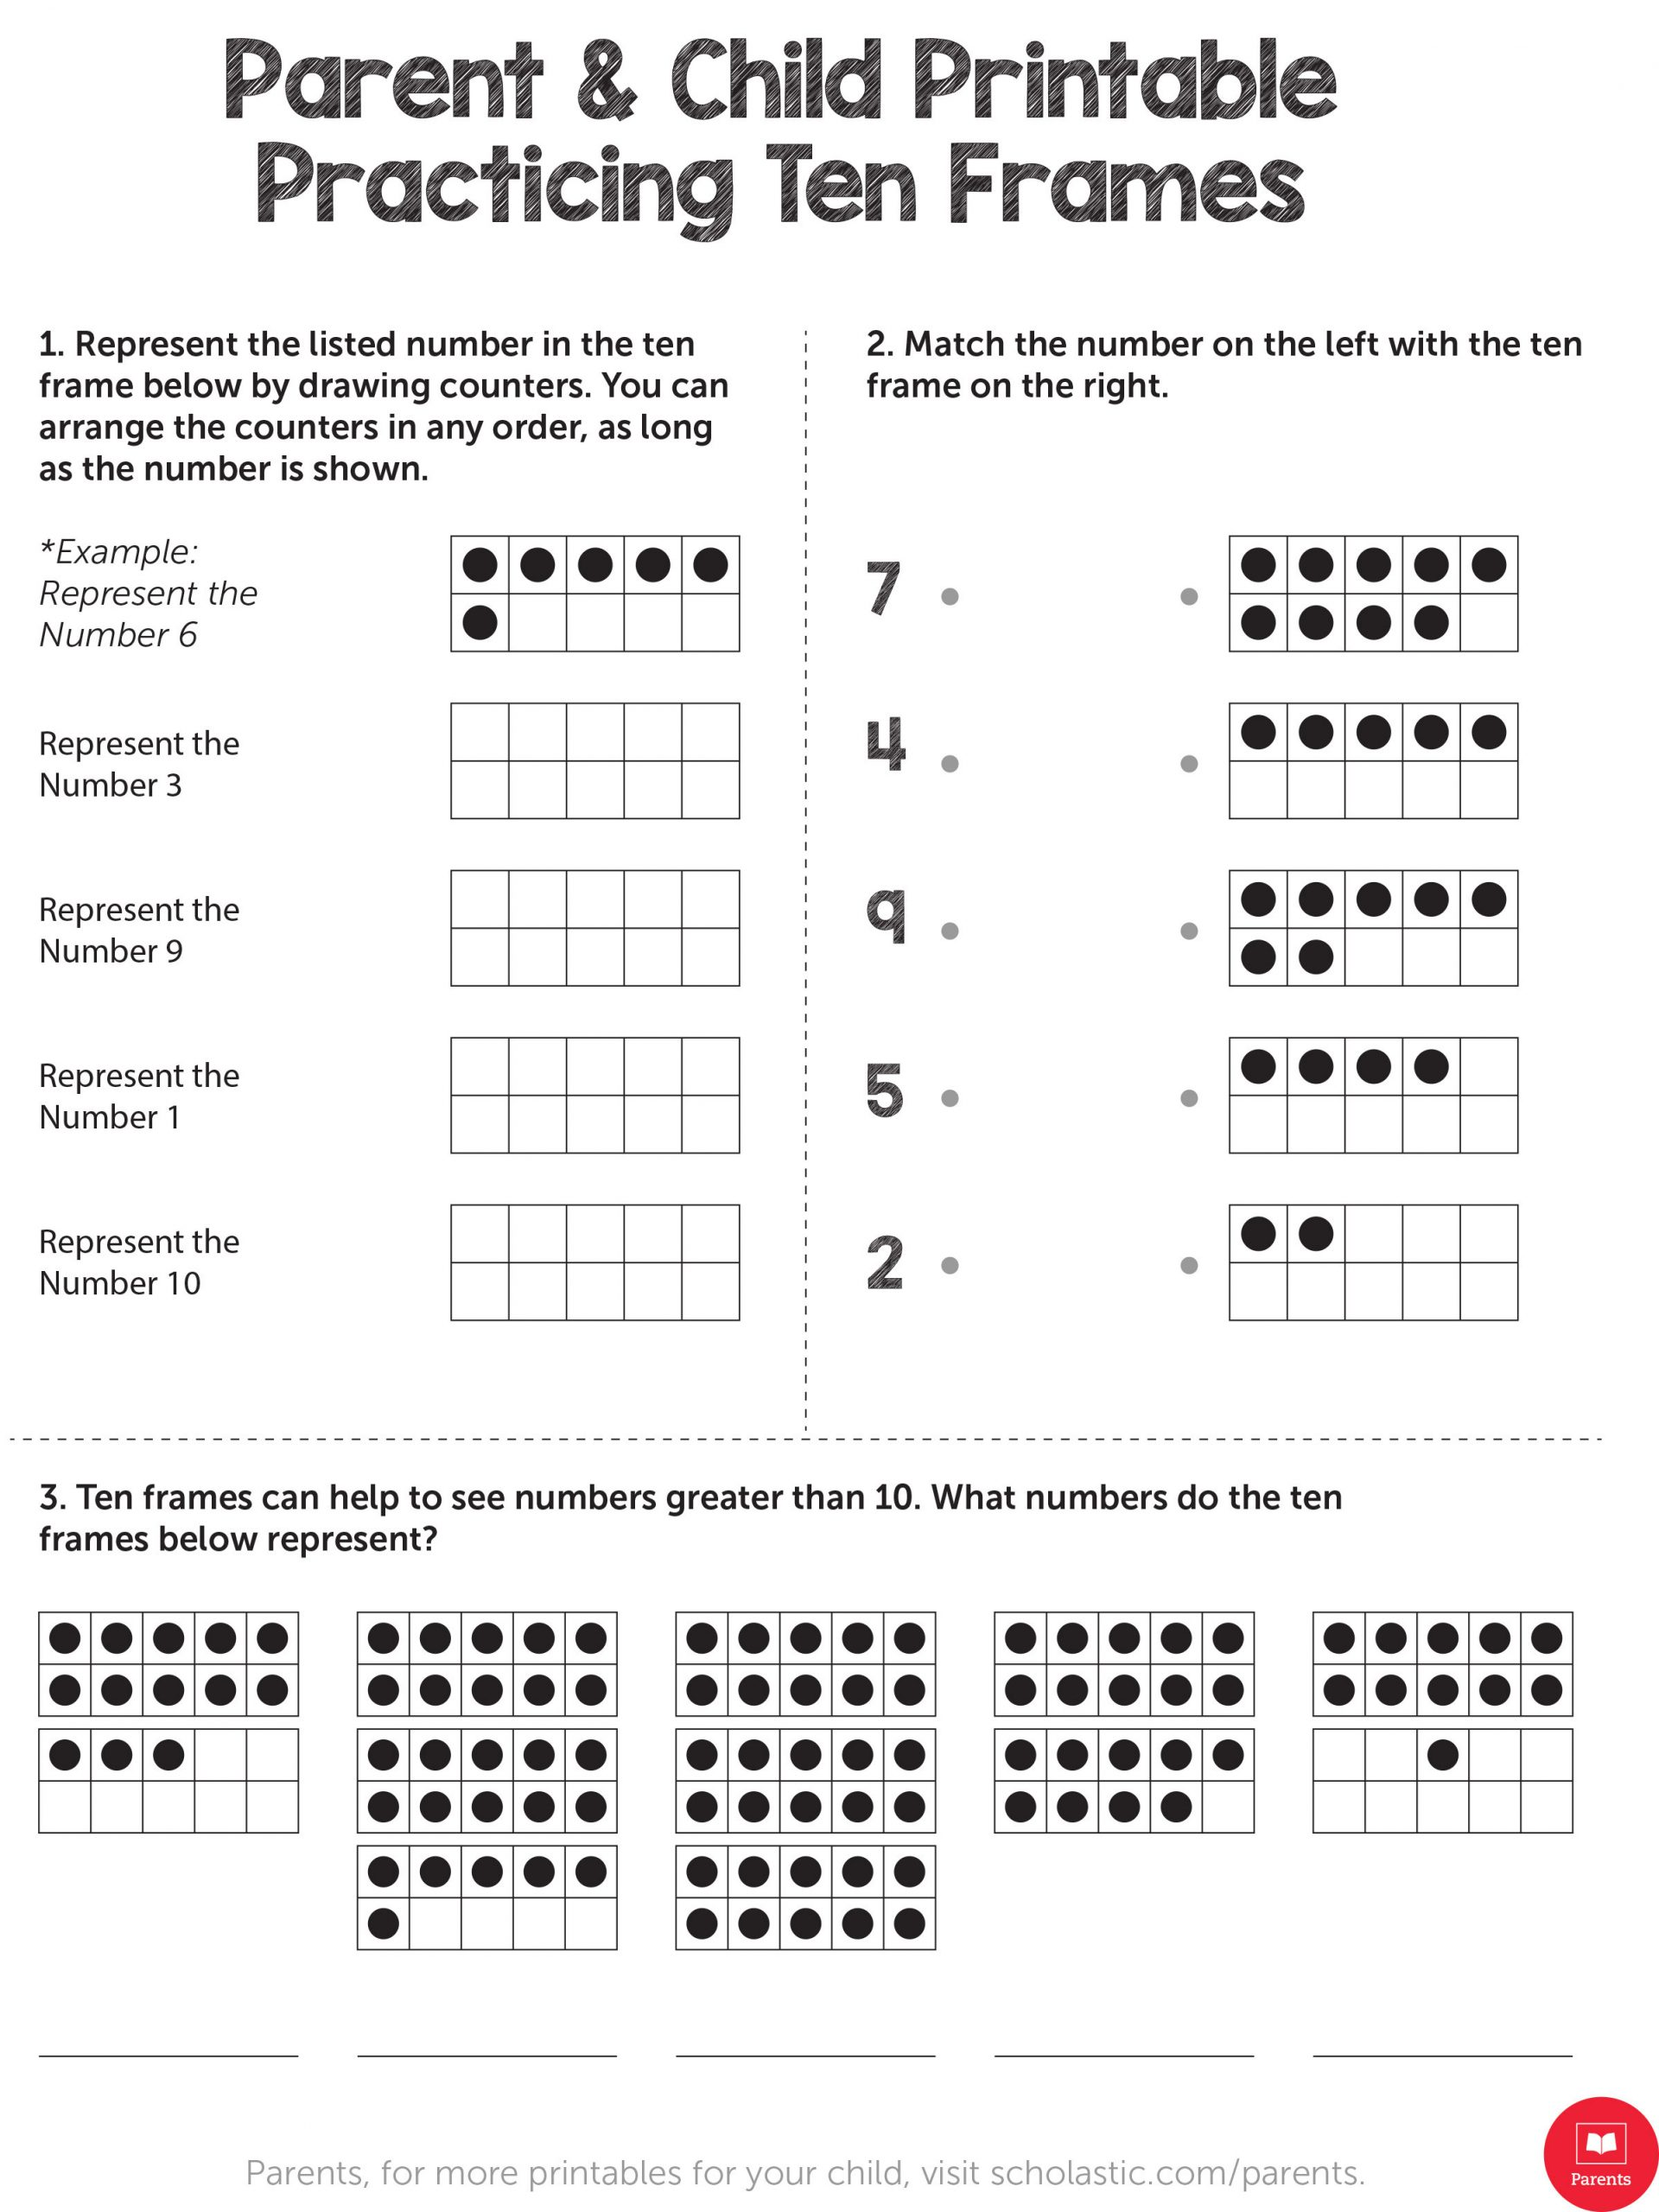 Scholastic Math Worksheets Learn Your Child S Math with This Ten Frame Printable